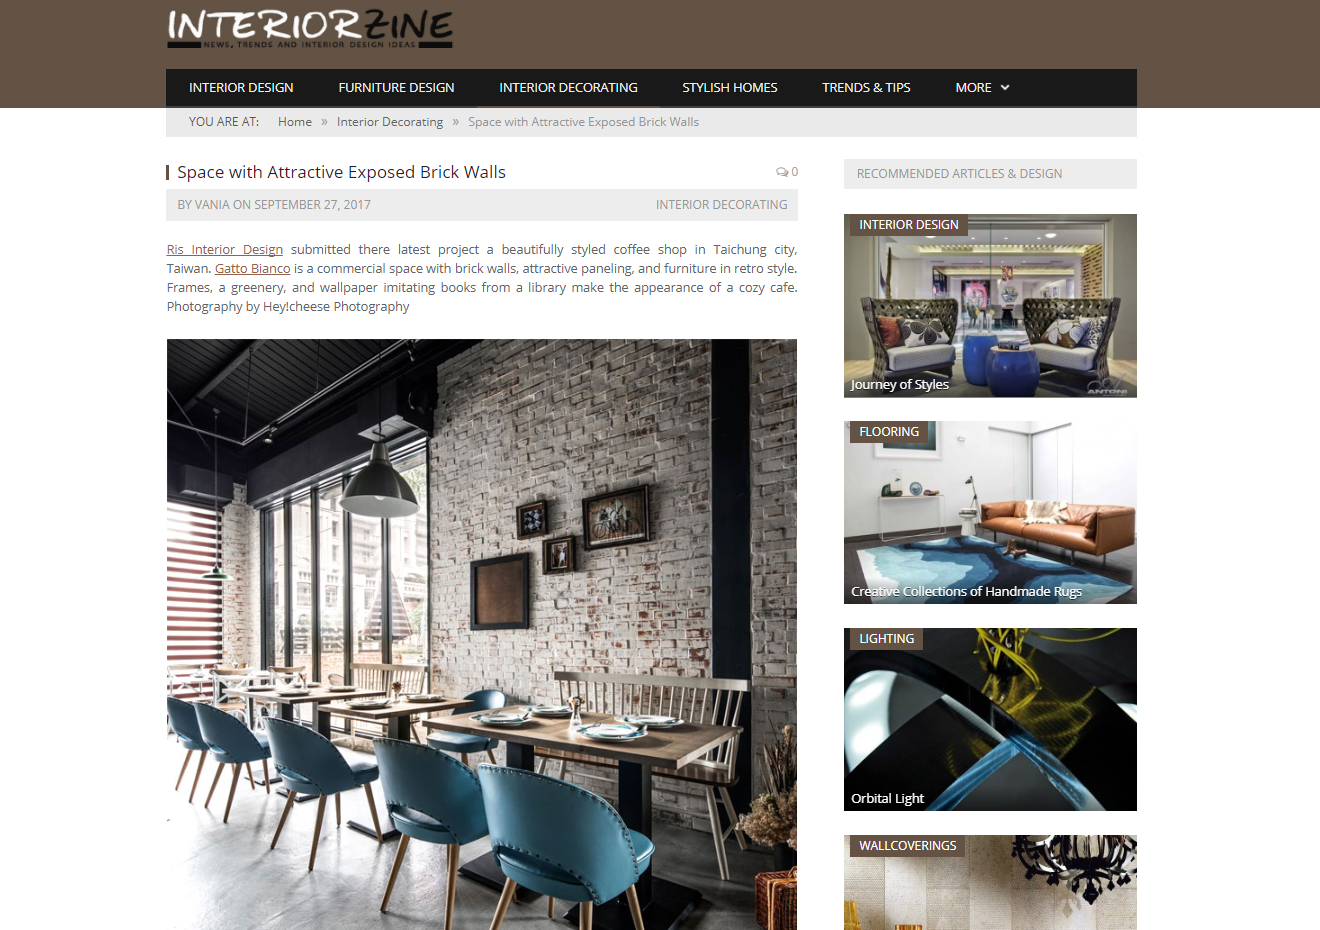 Space with Attractive Exposed Brick Walls